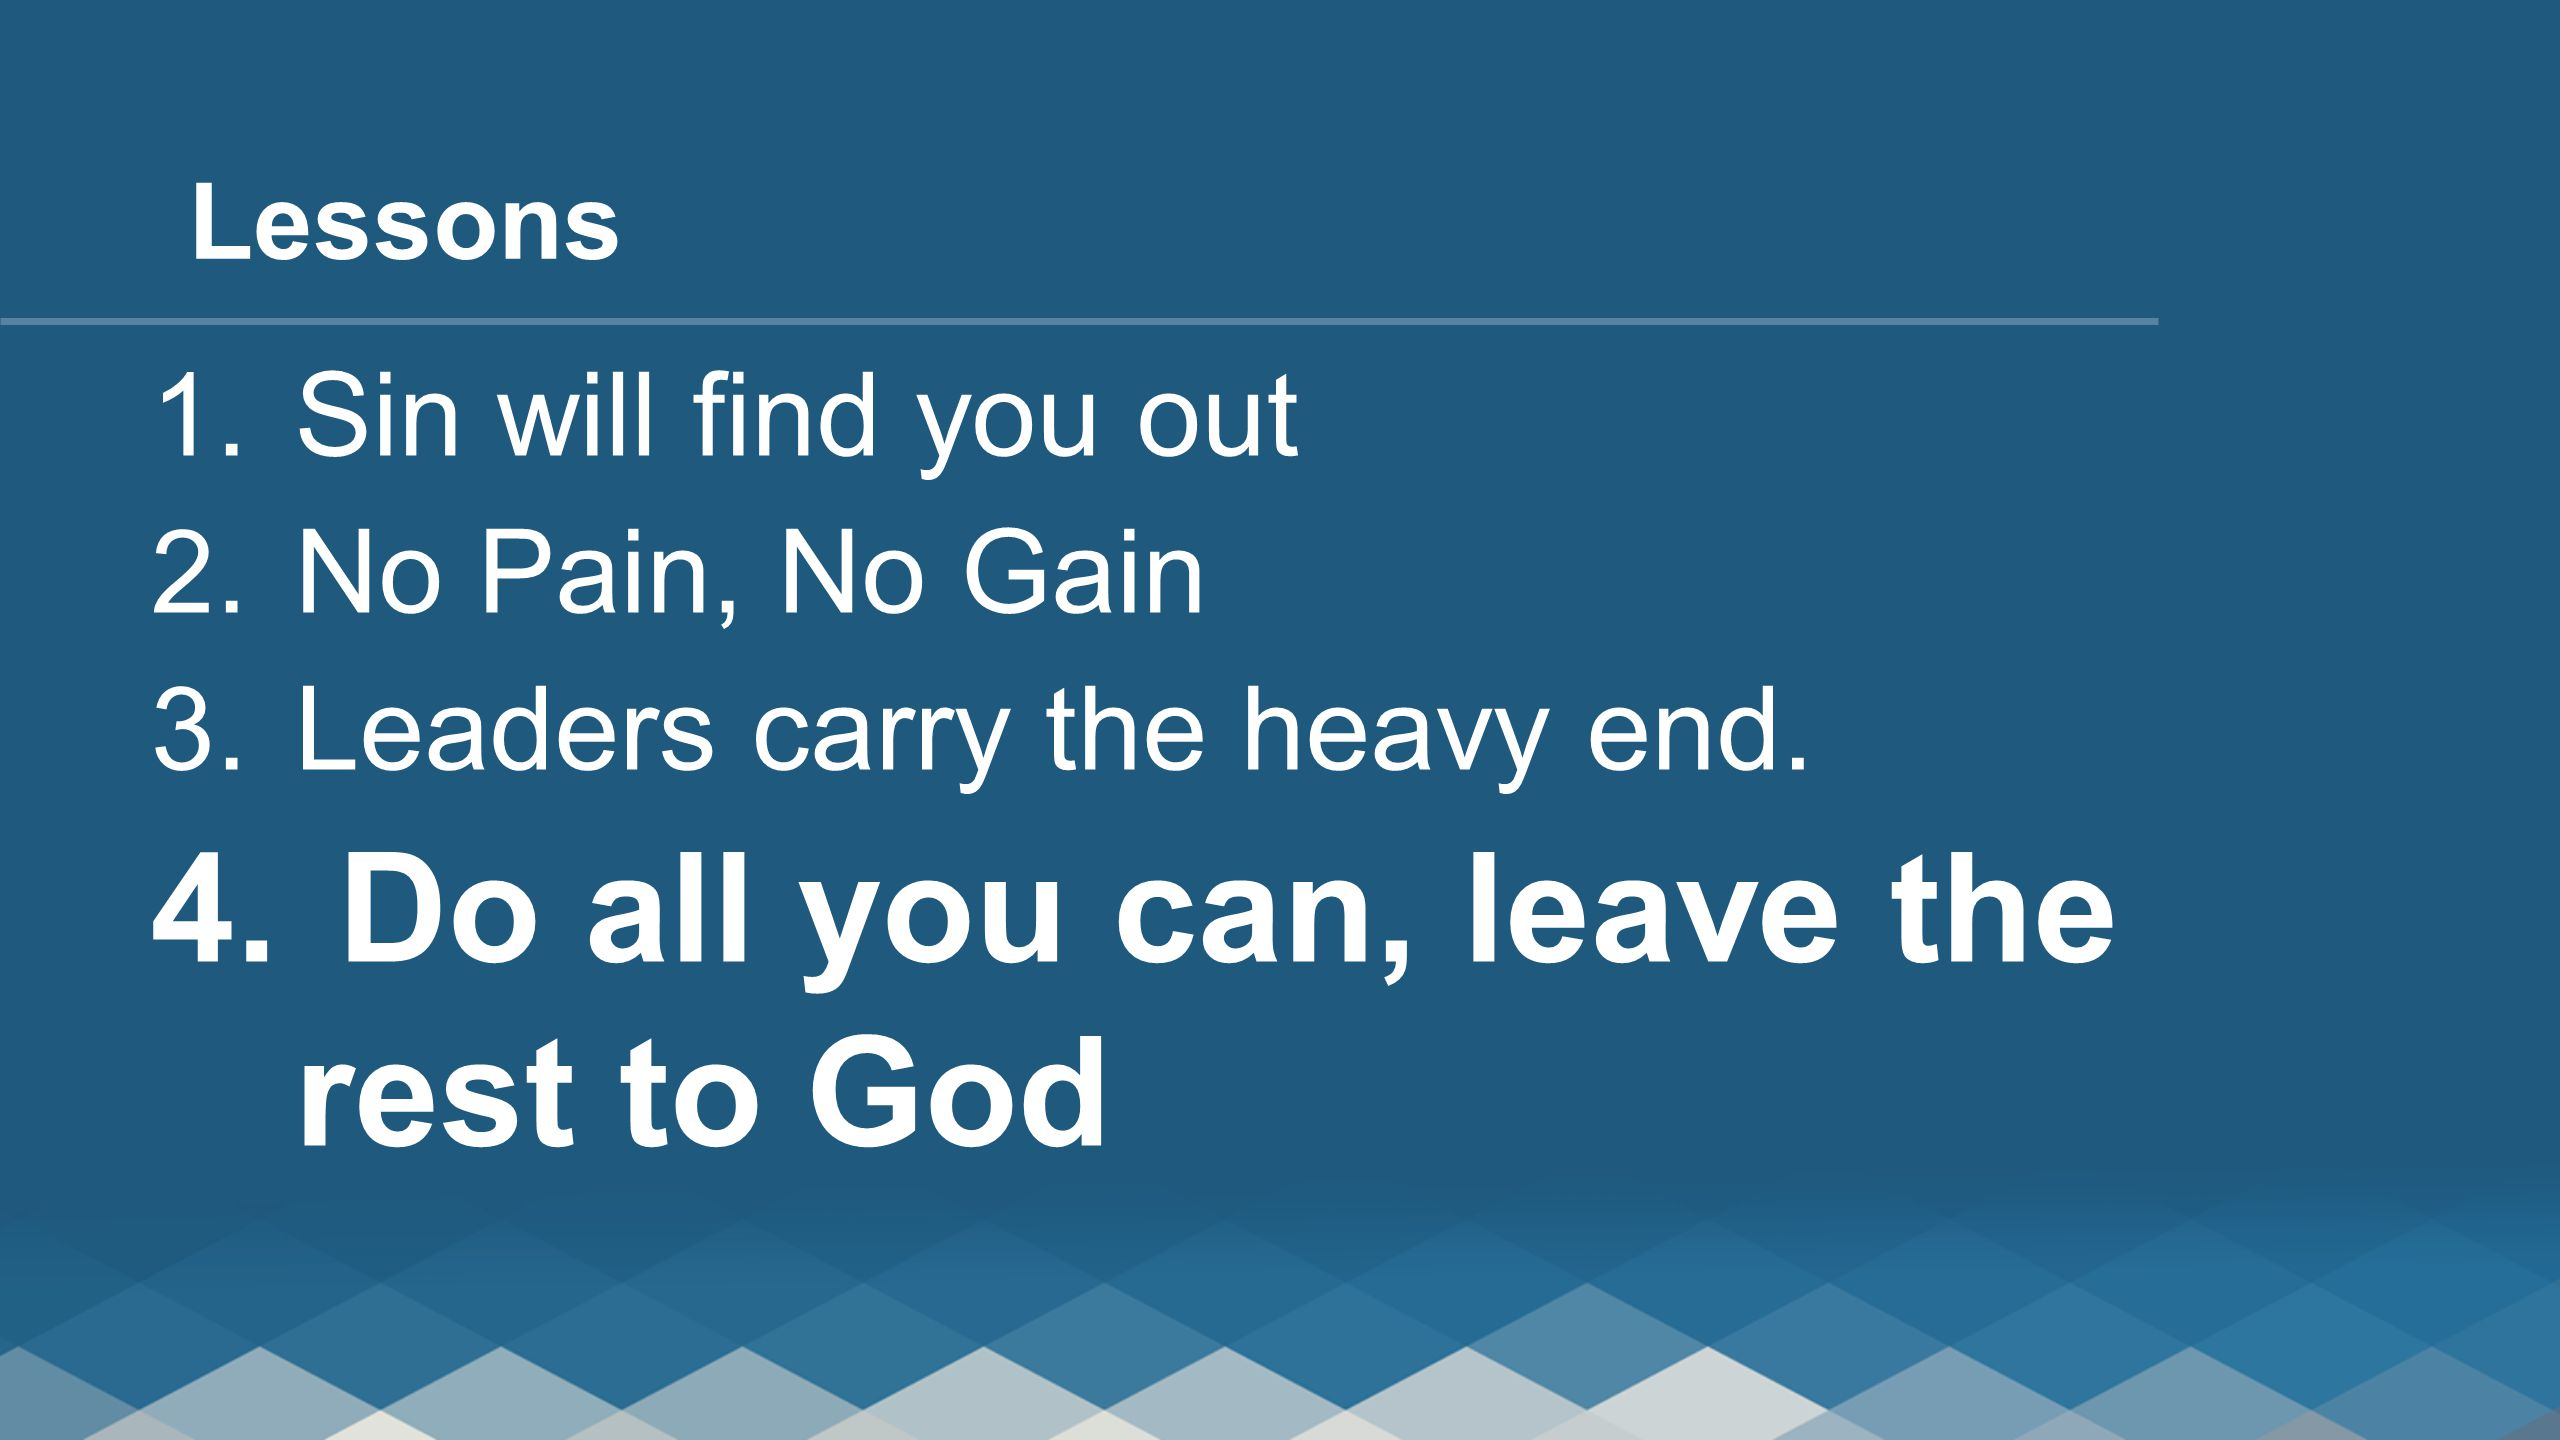 1. Sin will find you out 2. No Pain, No Gain 3. Leaders carry the heavy end. 4. Do all you can, leave the rest to God Lessons